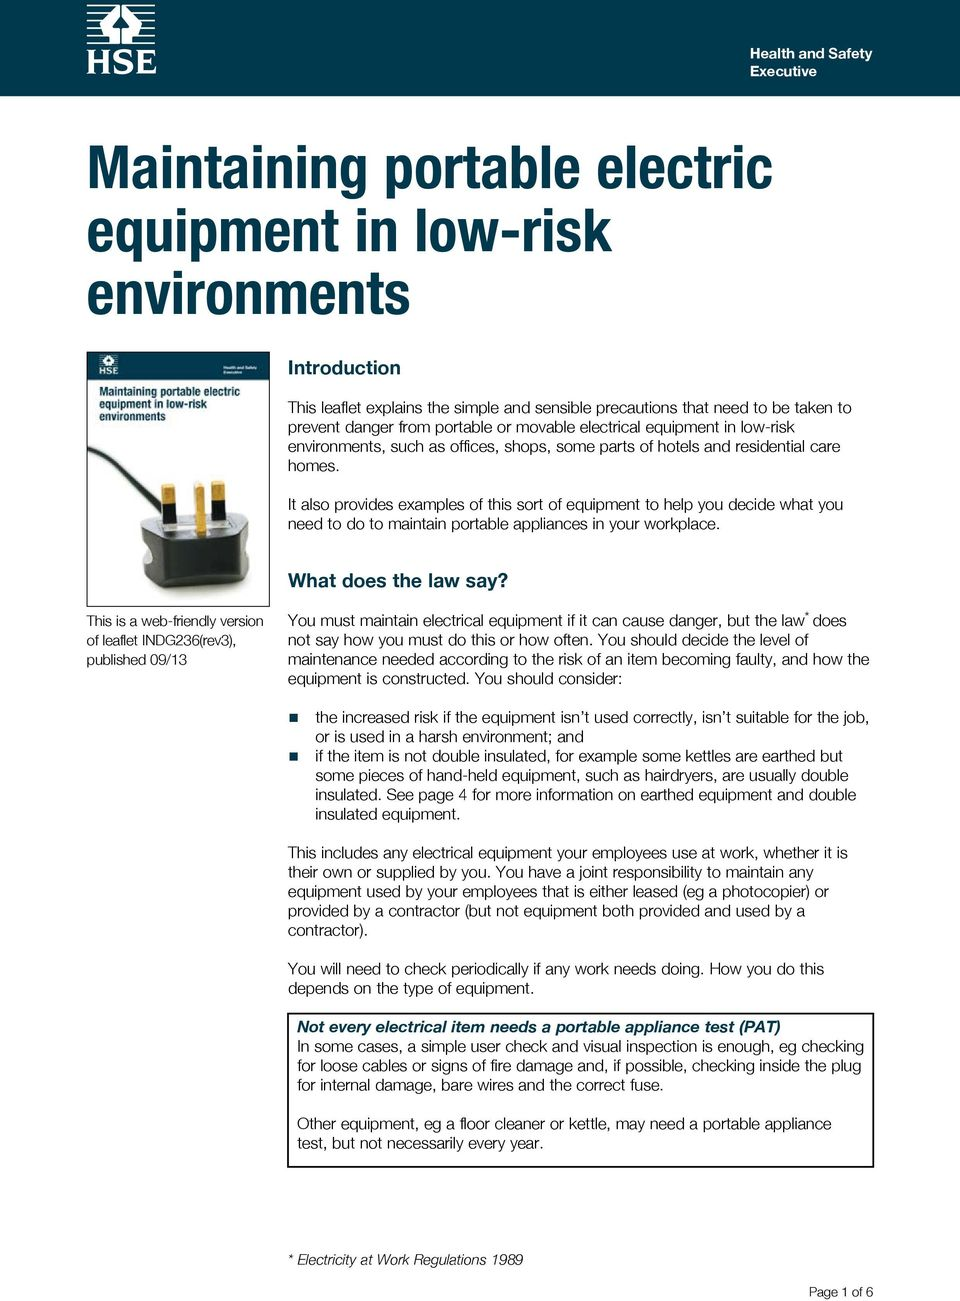 It also provides examples of this sort of equipment to help you decide what you need to do to maintain portable appliances in your workplace. What does the law say?